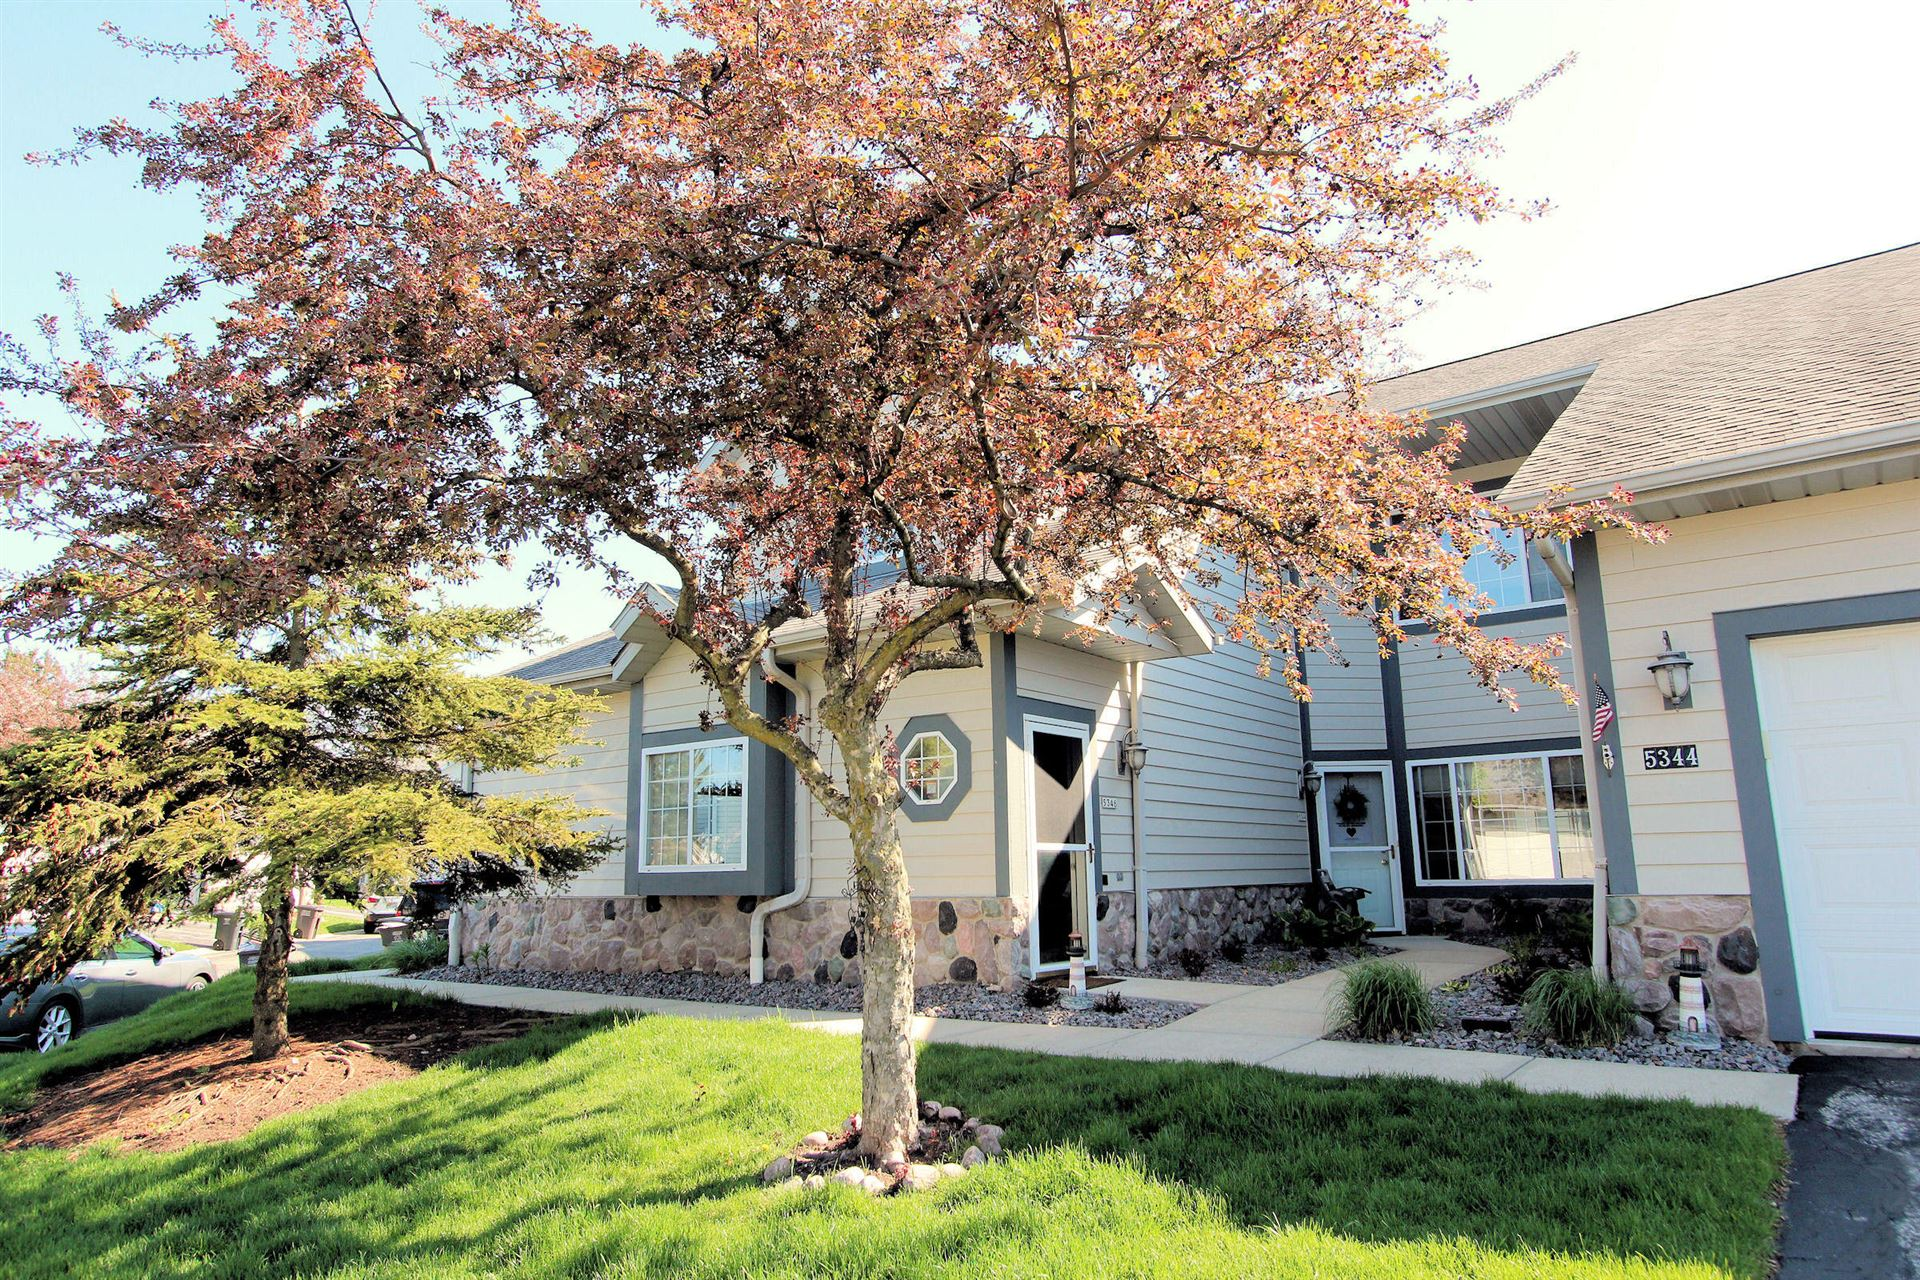 5346 S Hidden Dr, Greenfield, WI 53221 - #: 1690535